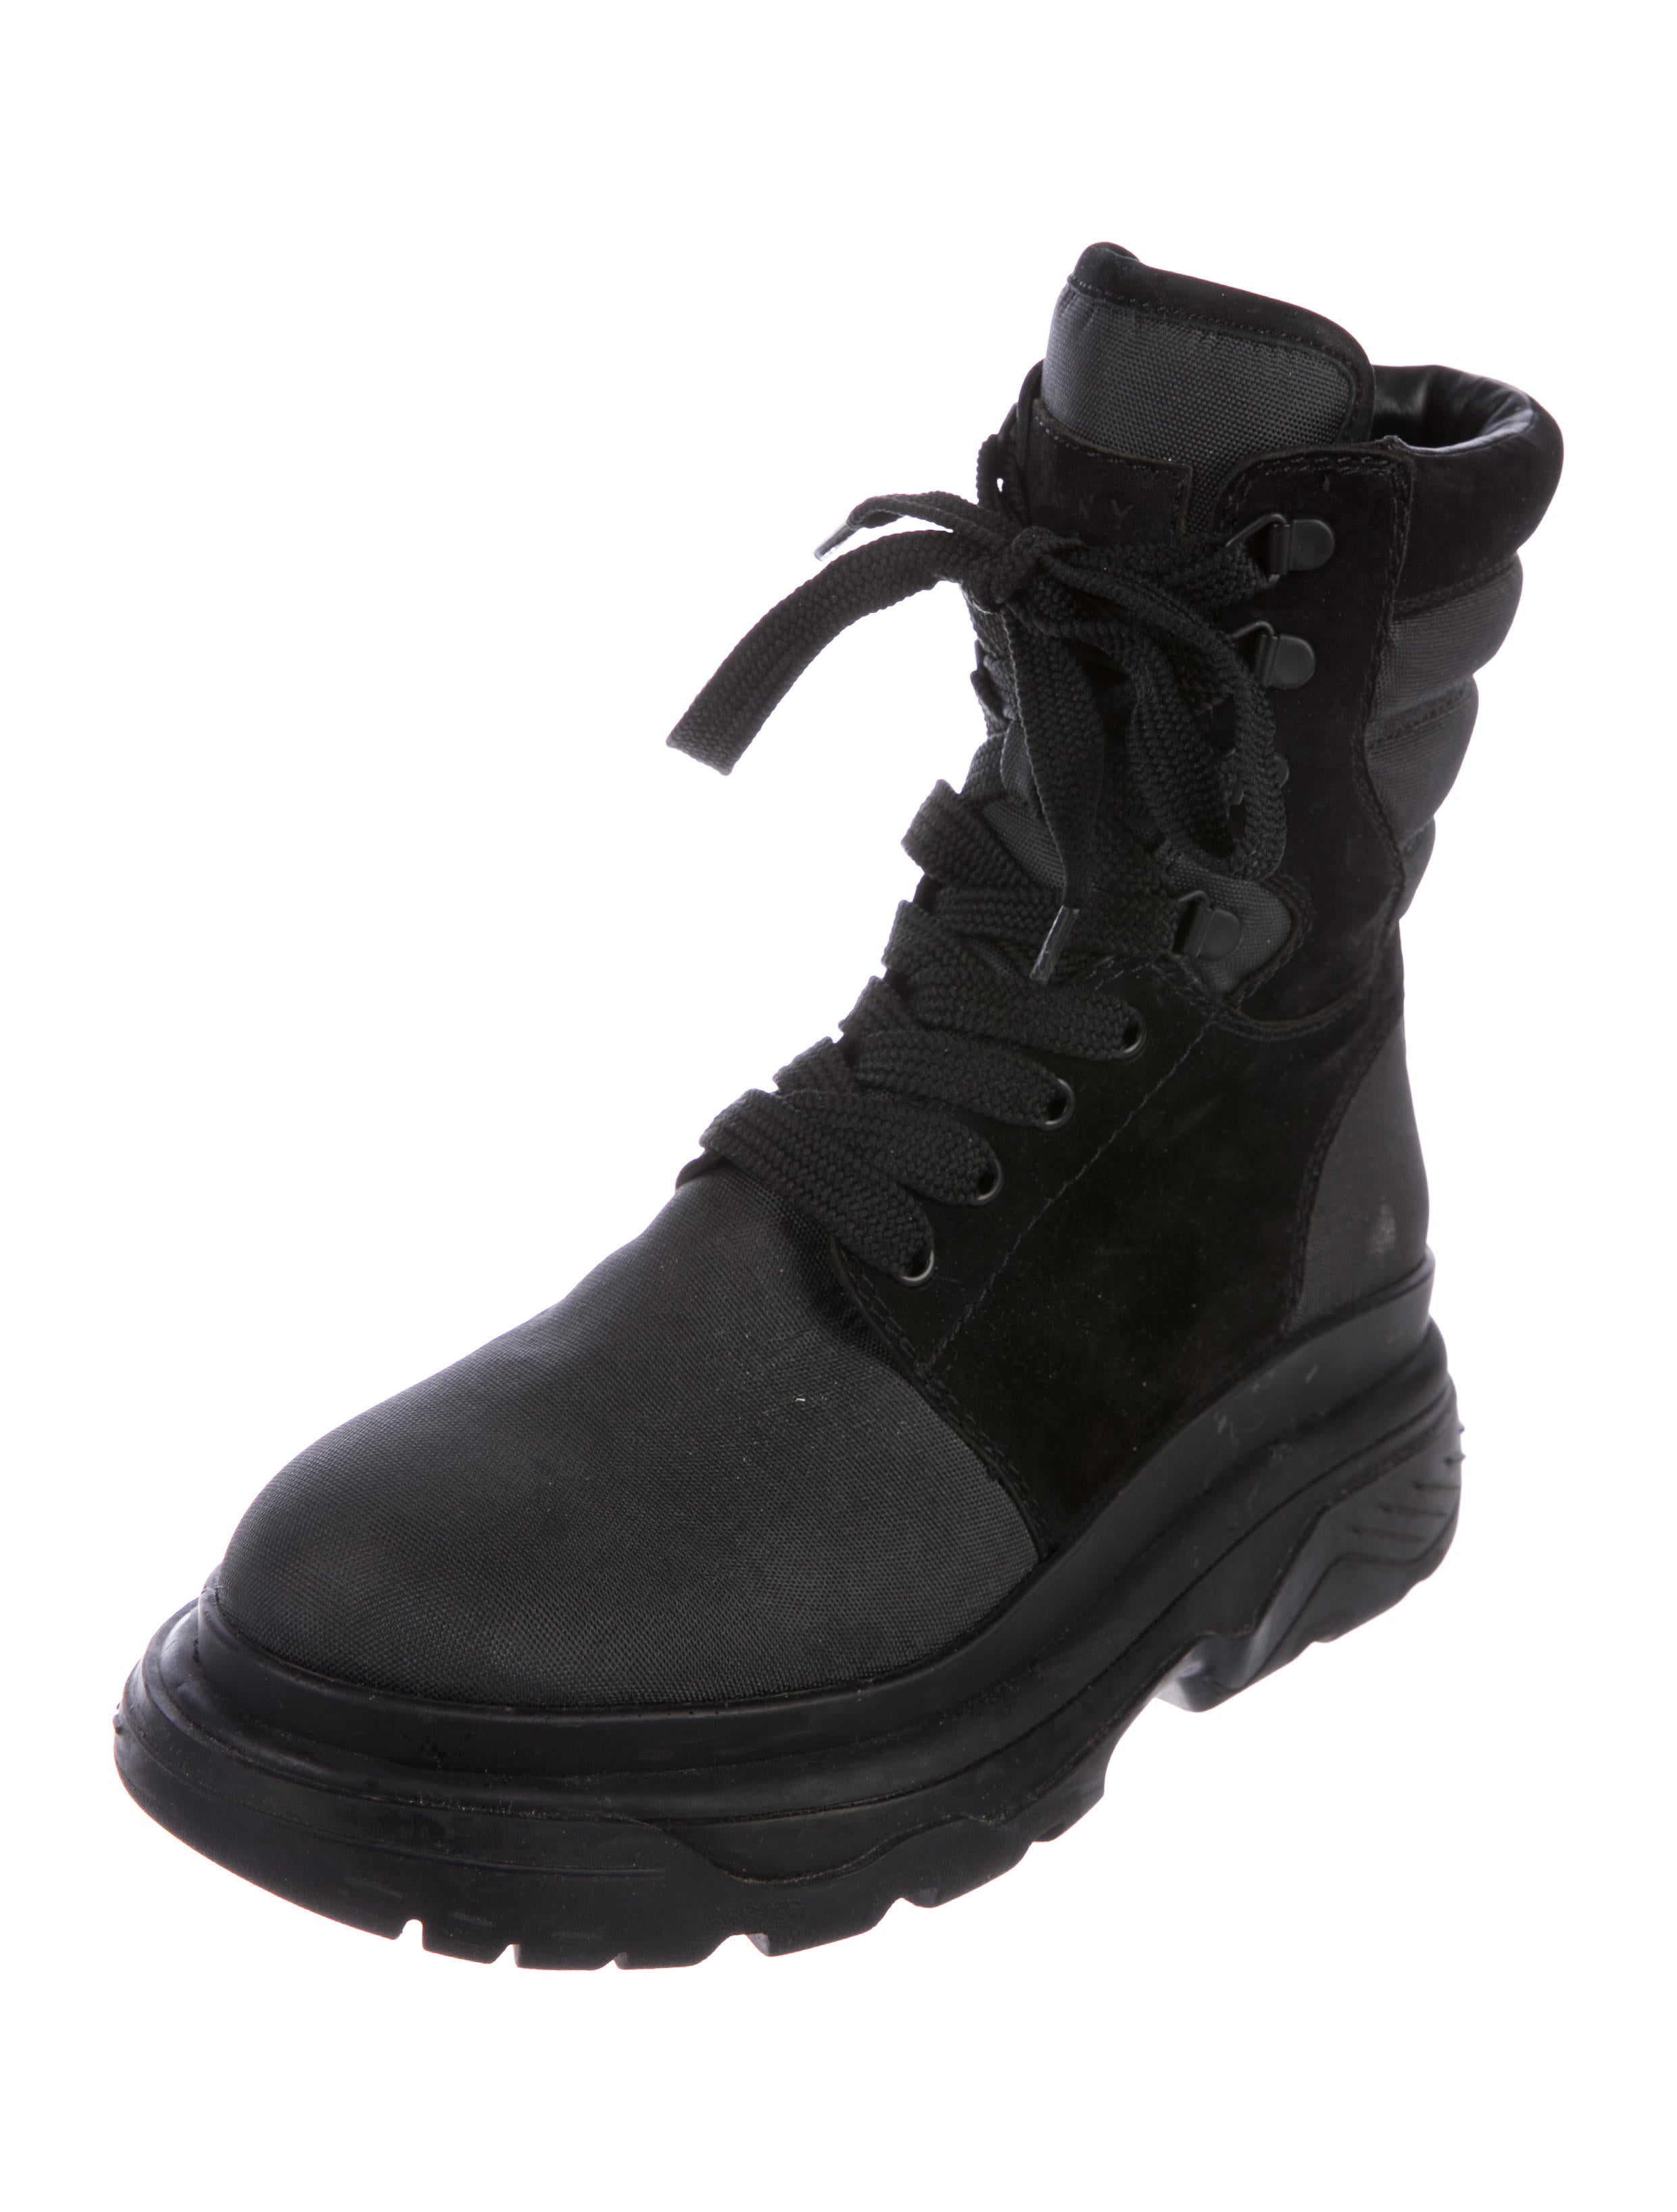 best wholesale sale online really cheap DKNY Mesh Combat Boots free shipping sneakernews view sale online Ql5wrMrrz3